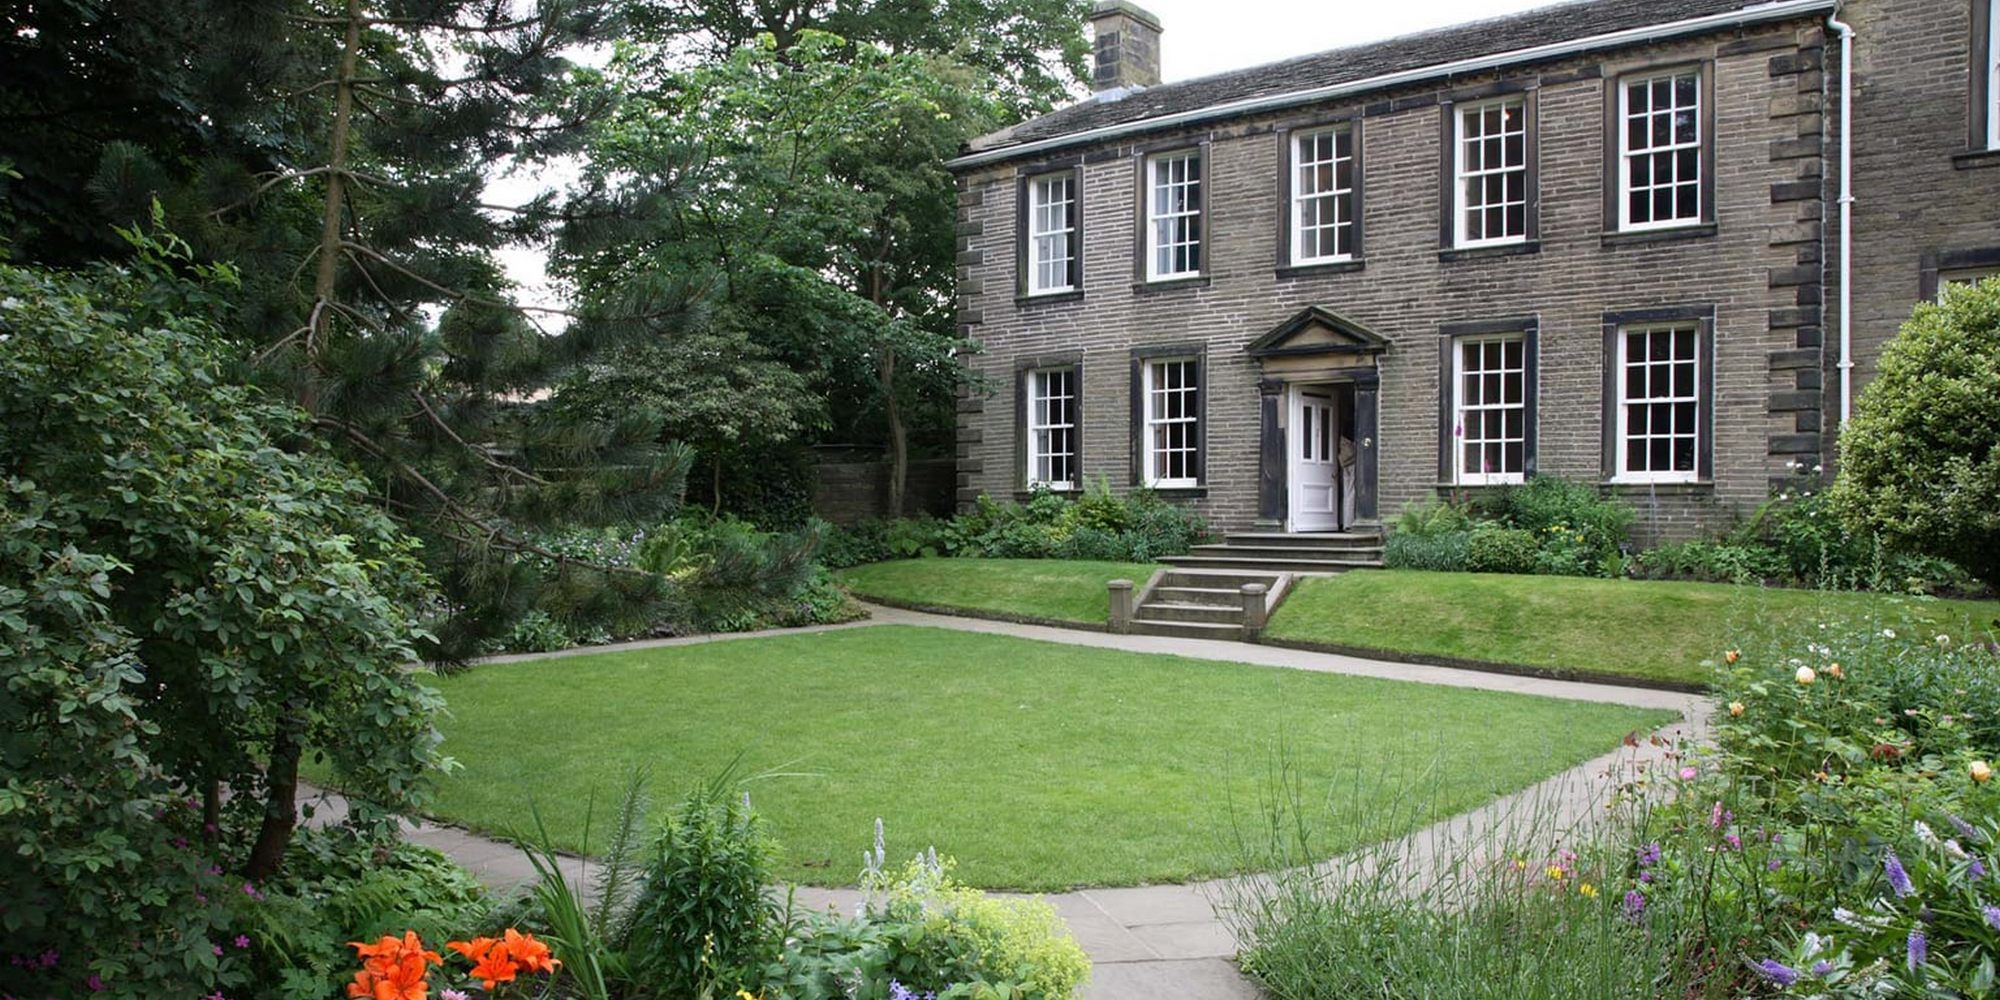 /images/upload/blog/1494/1494_bronte-parsonage-museum-1536.jpg